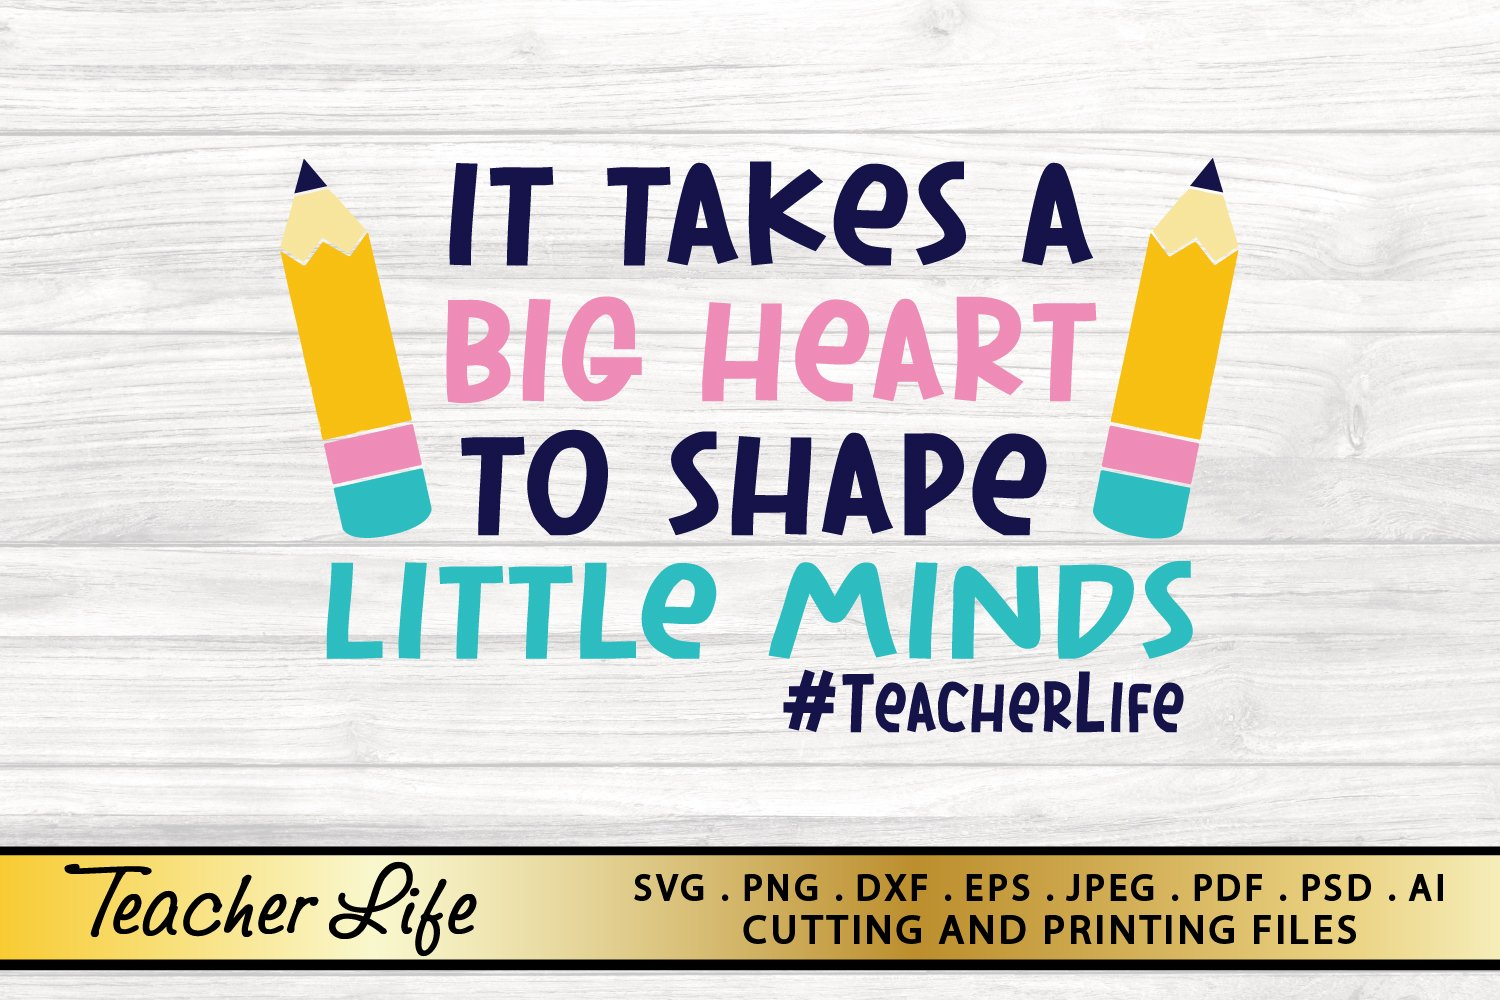 Teacher Life Svg Png Eps Dxf Files For Cutting And Printing 853382 Illustrations Design Bundles